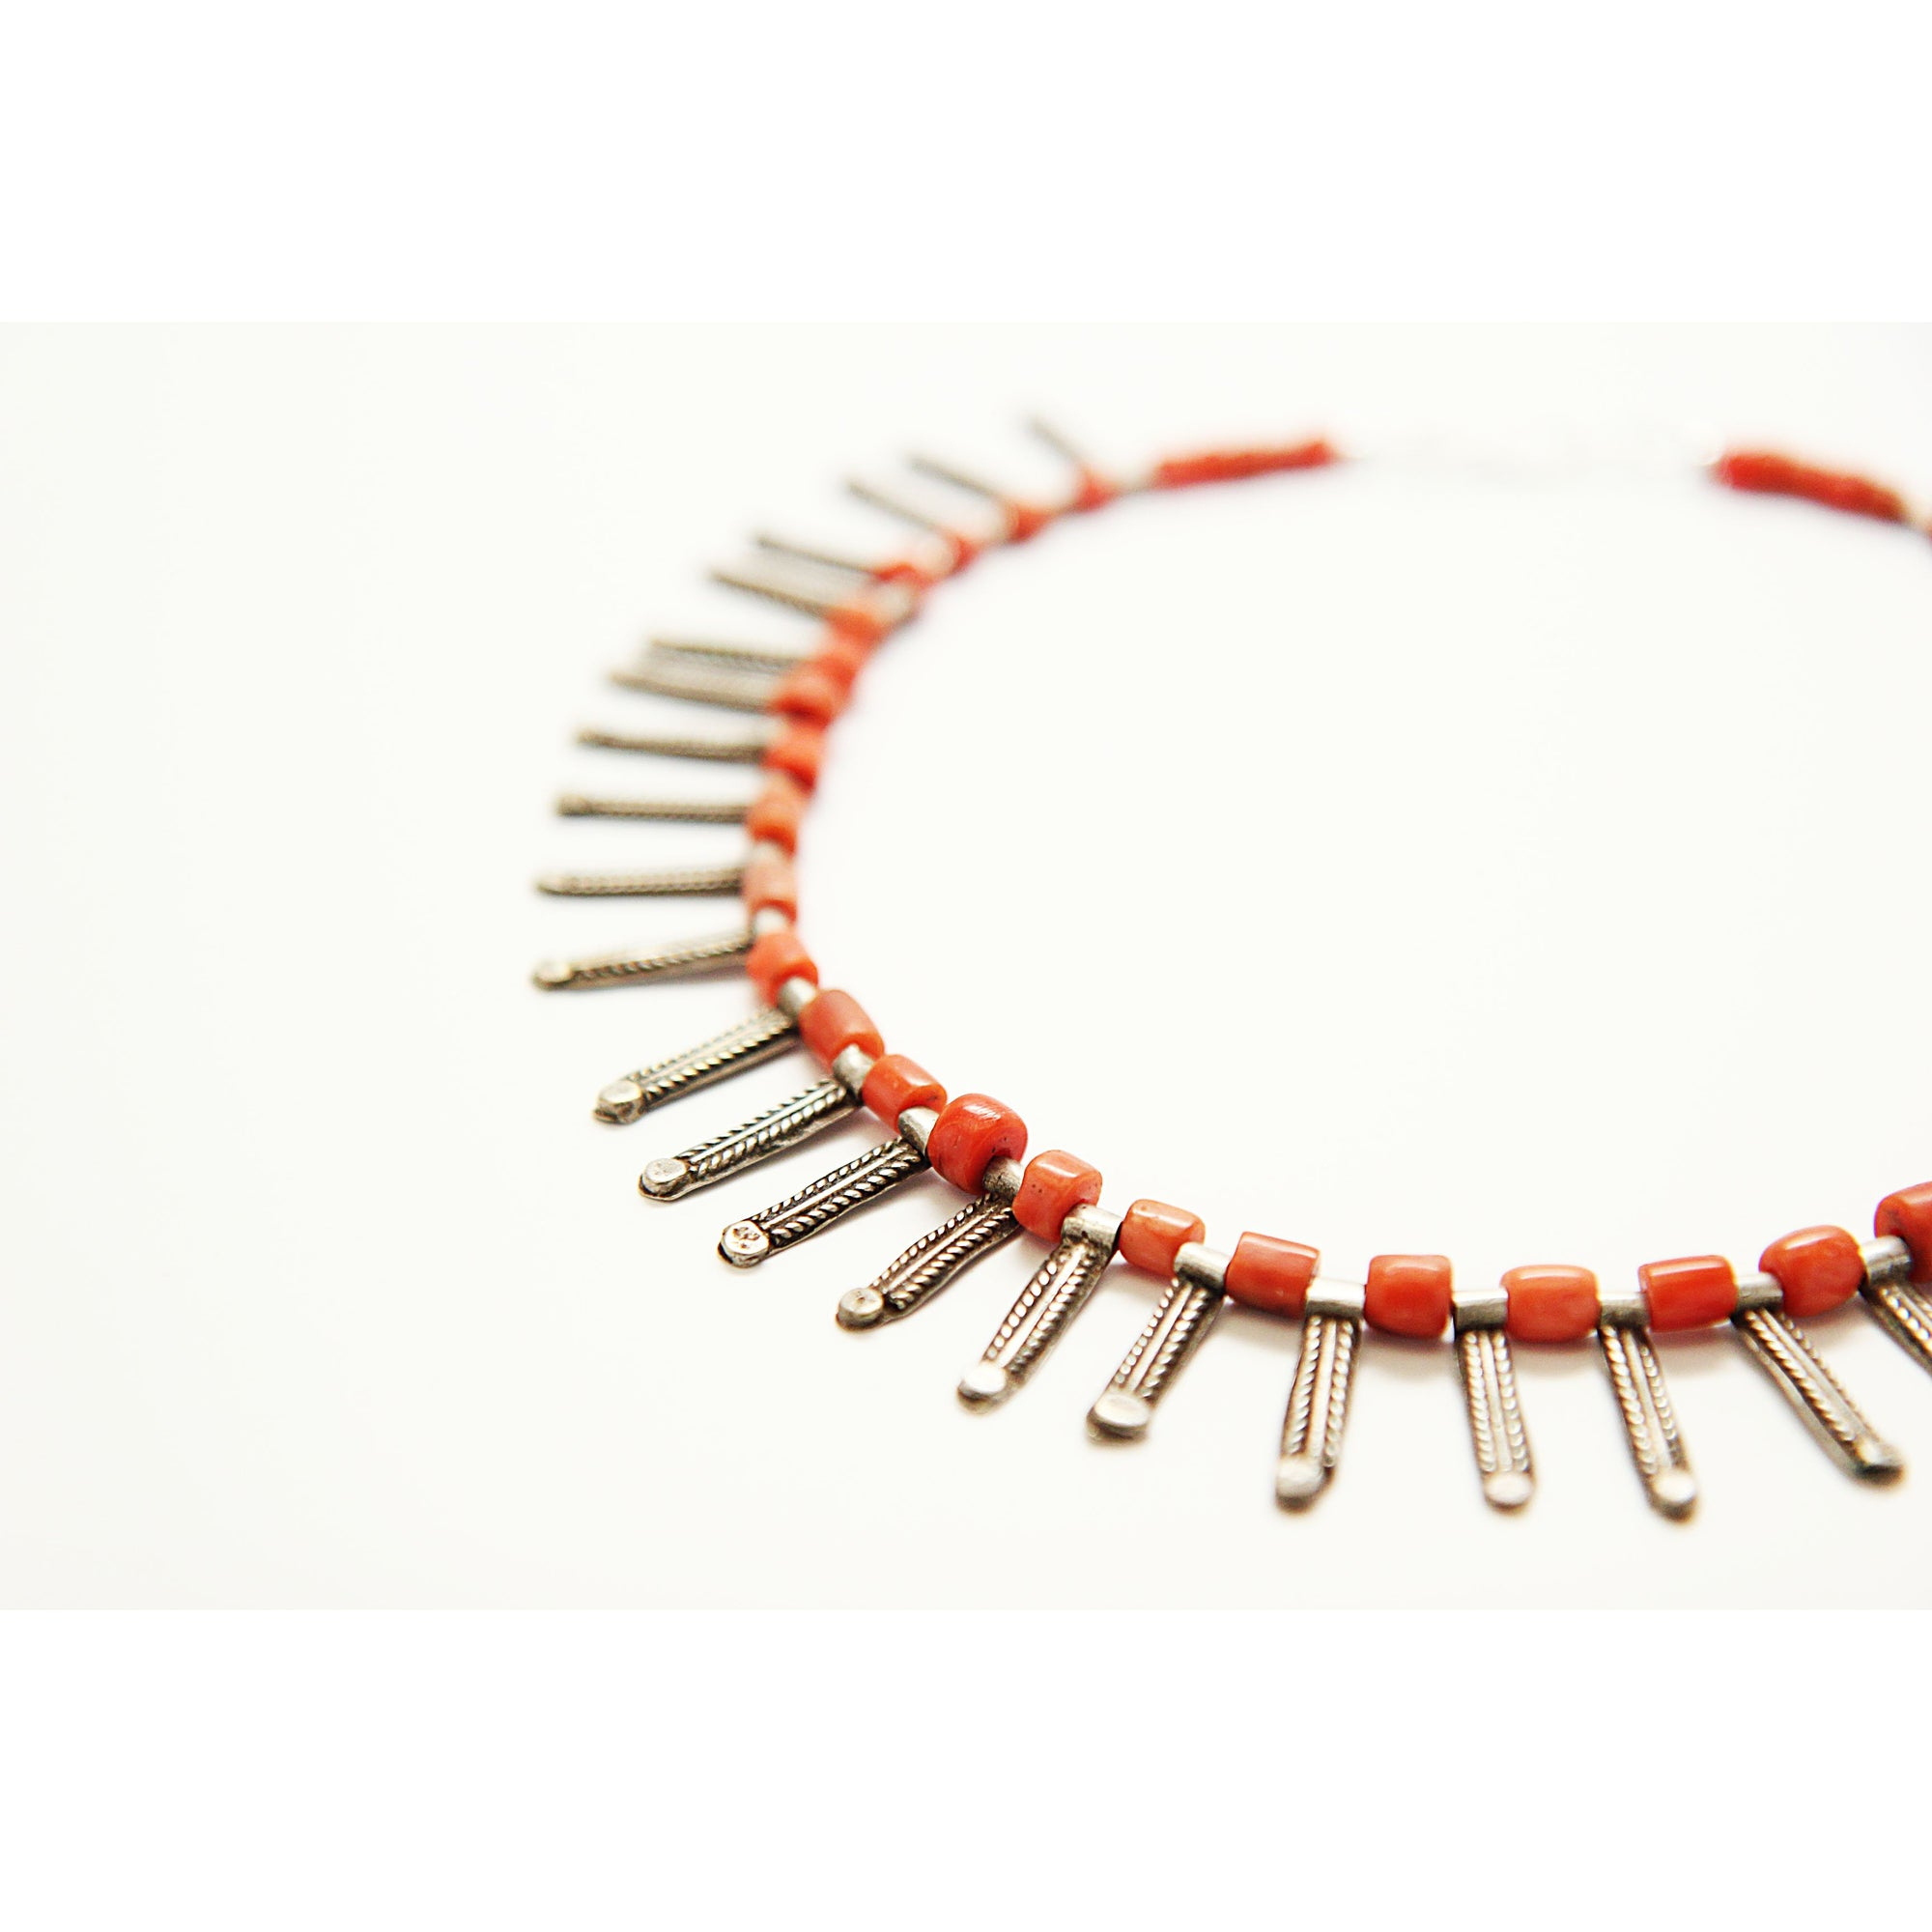 1/1 Antique Mediterranean Coral Necklace - Unique Jewelry by Ruminations Studio